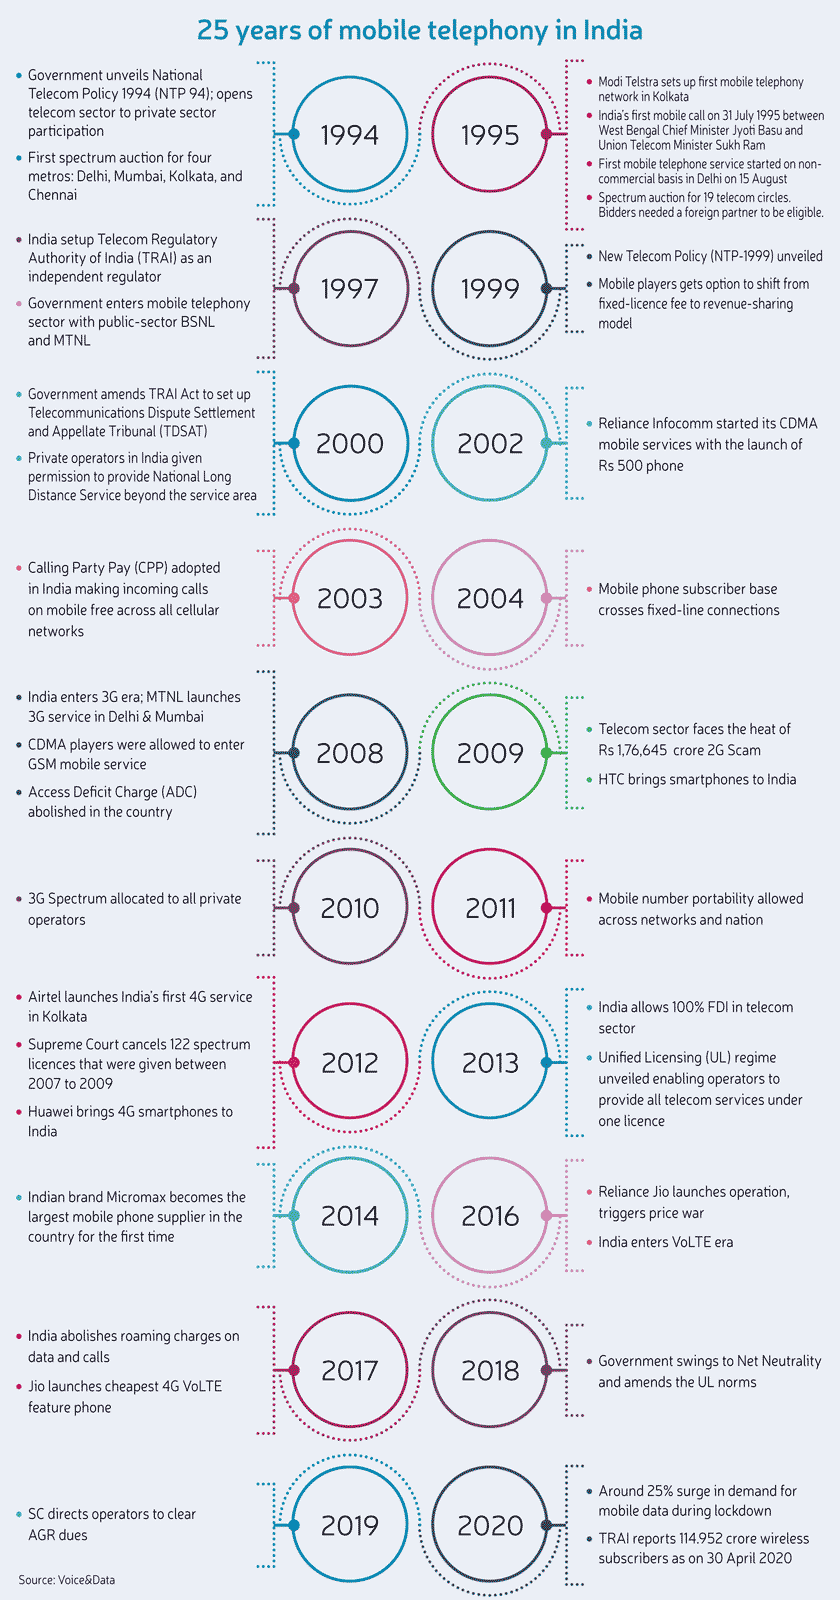 25 Years of Mobile Telephony in India